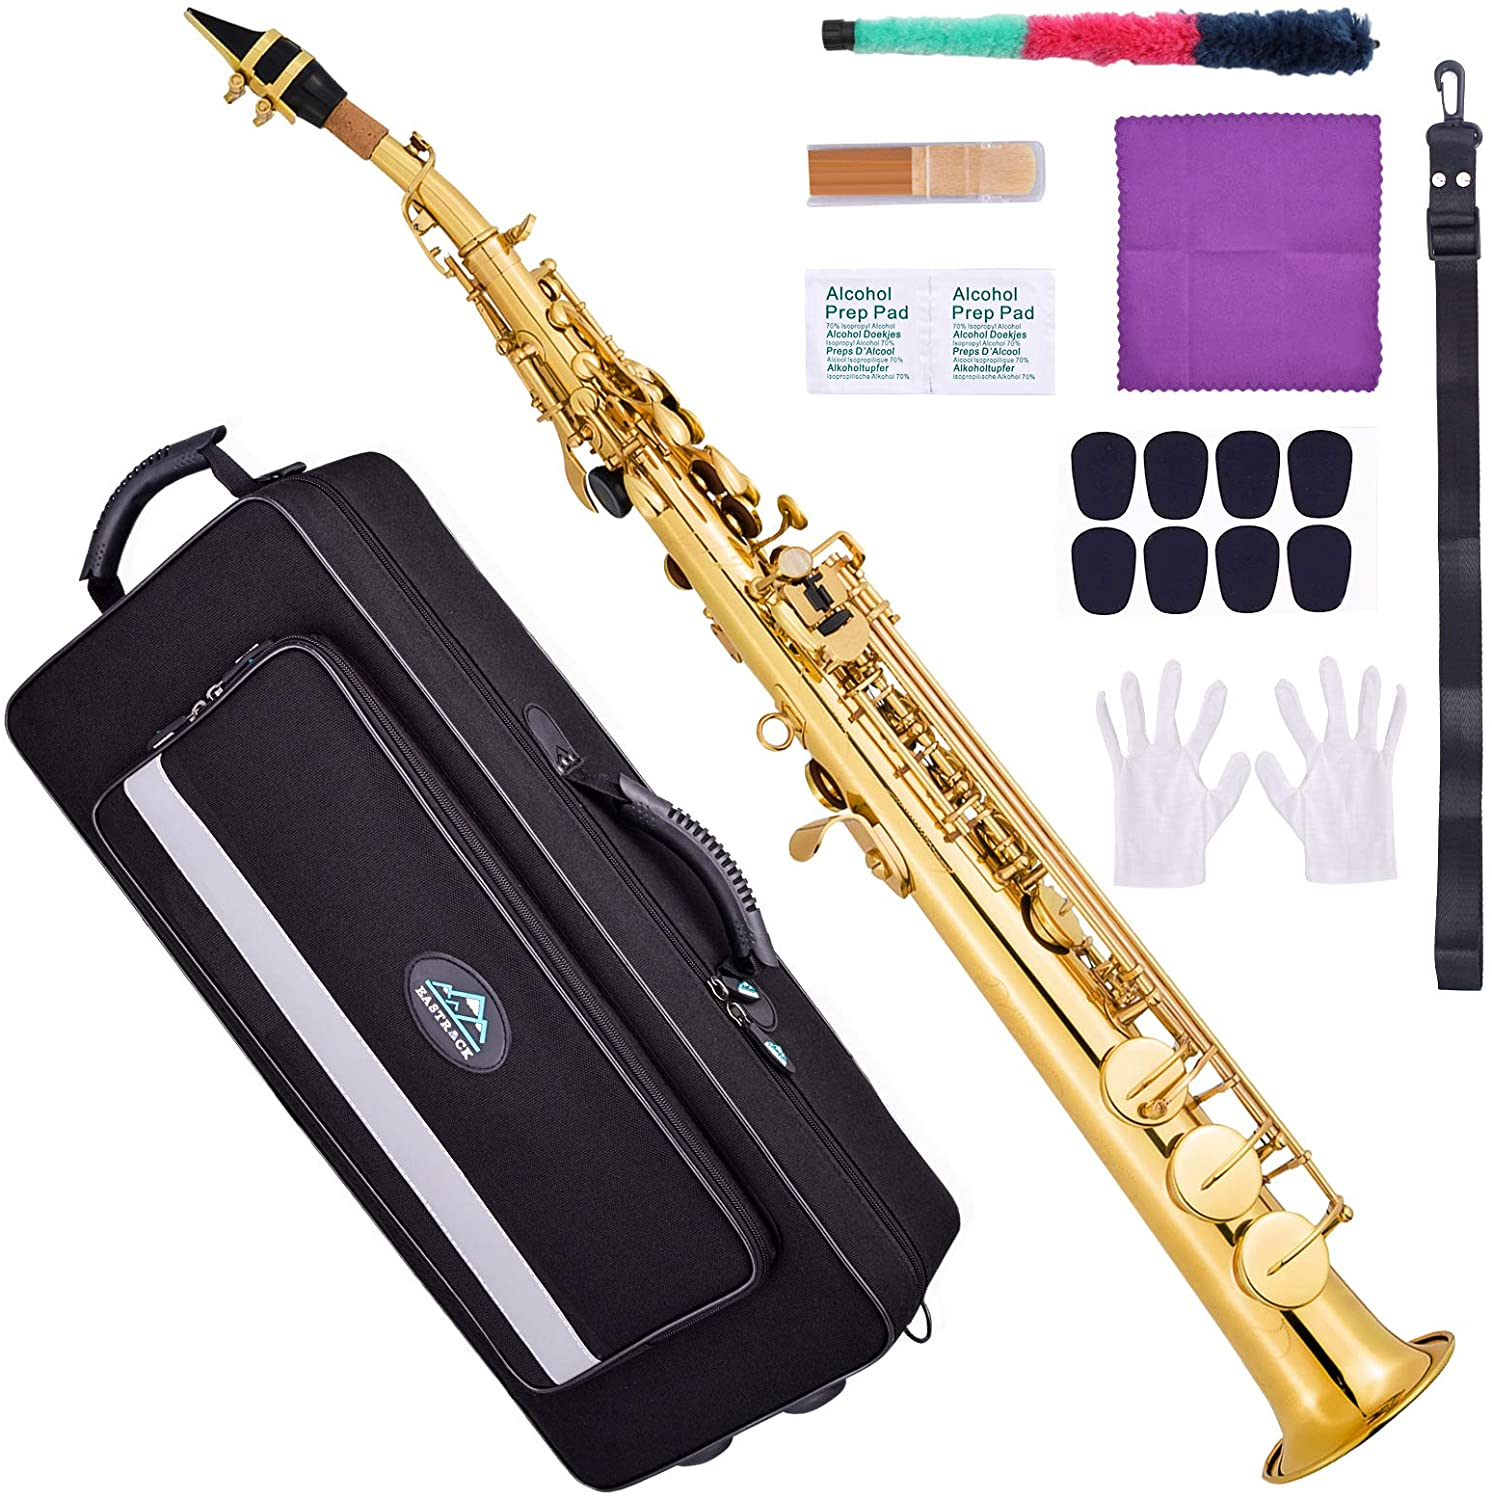 Lacquered Gold B-class Soprano Saxophone high-end appearance Hongyushanghang Saxophone Suitable For Beginners To Practice Playing Instruments Color : Gold Conjoined Straight Saxophone